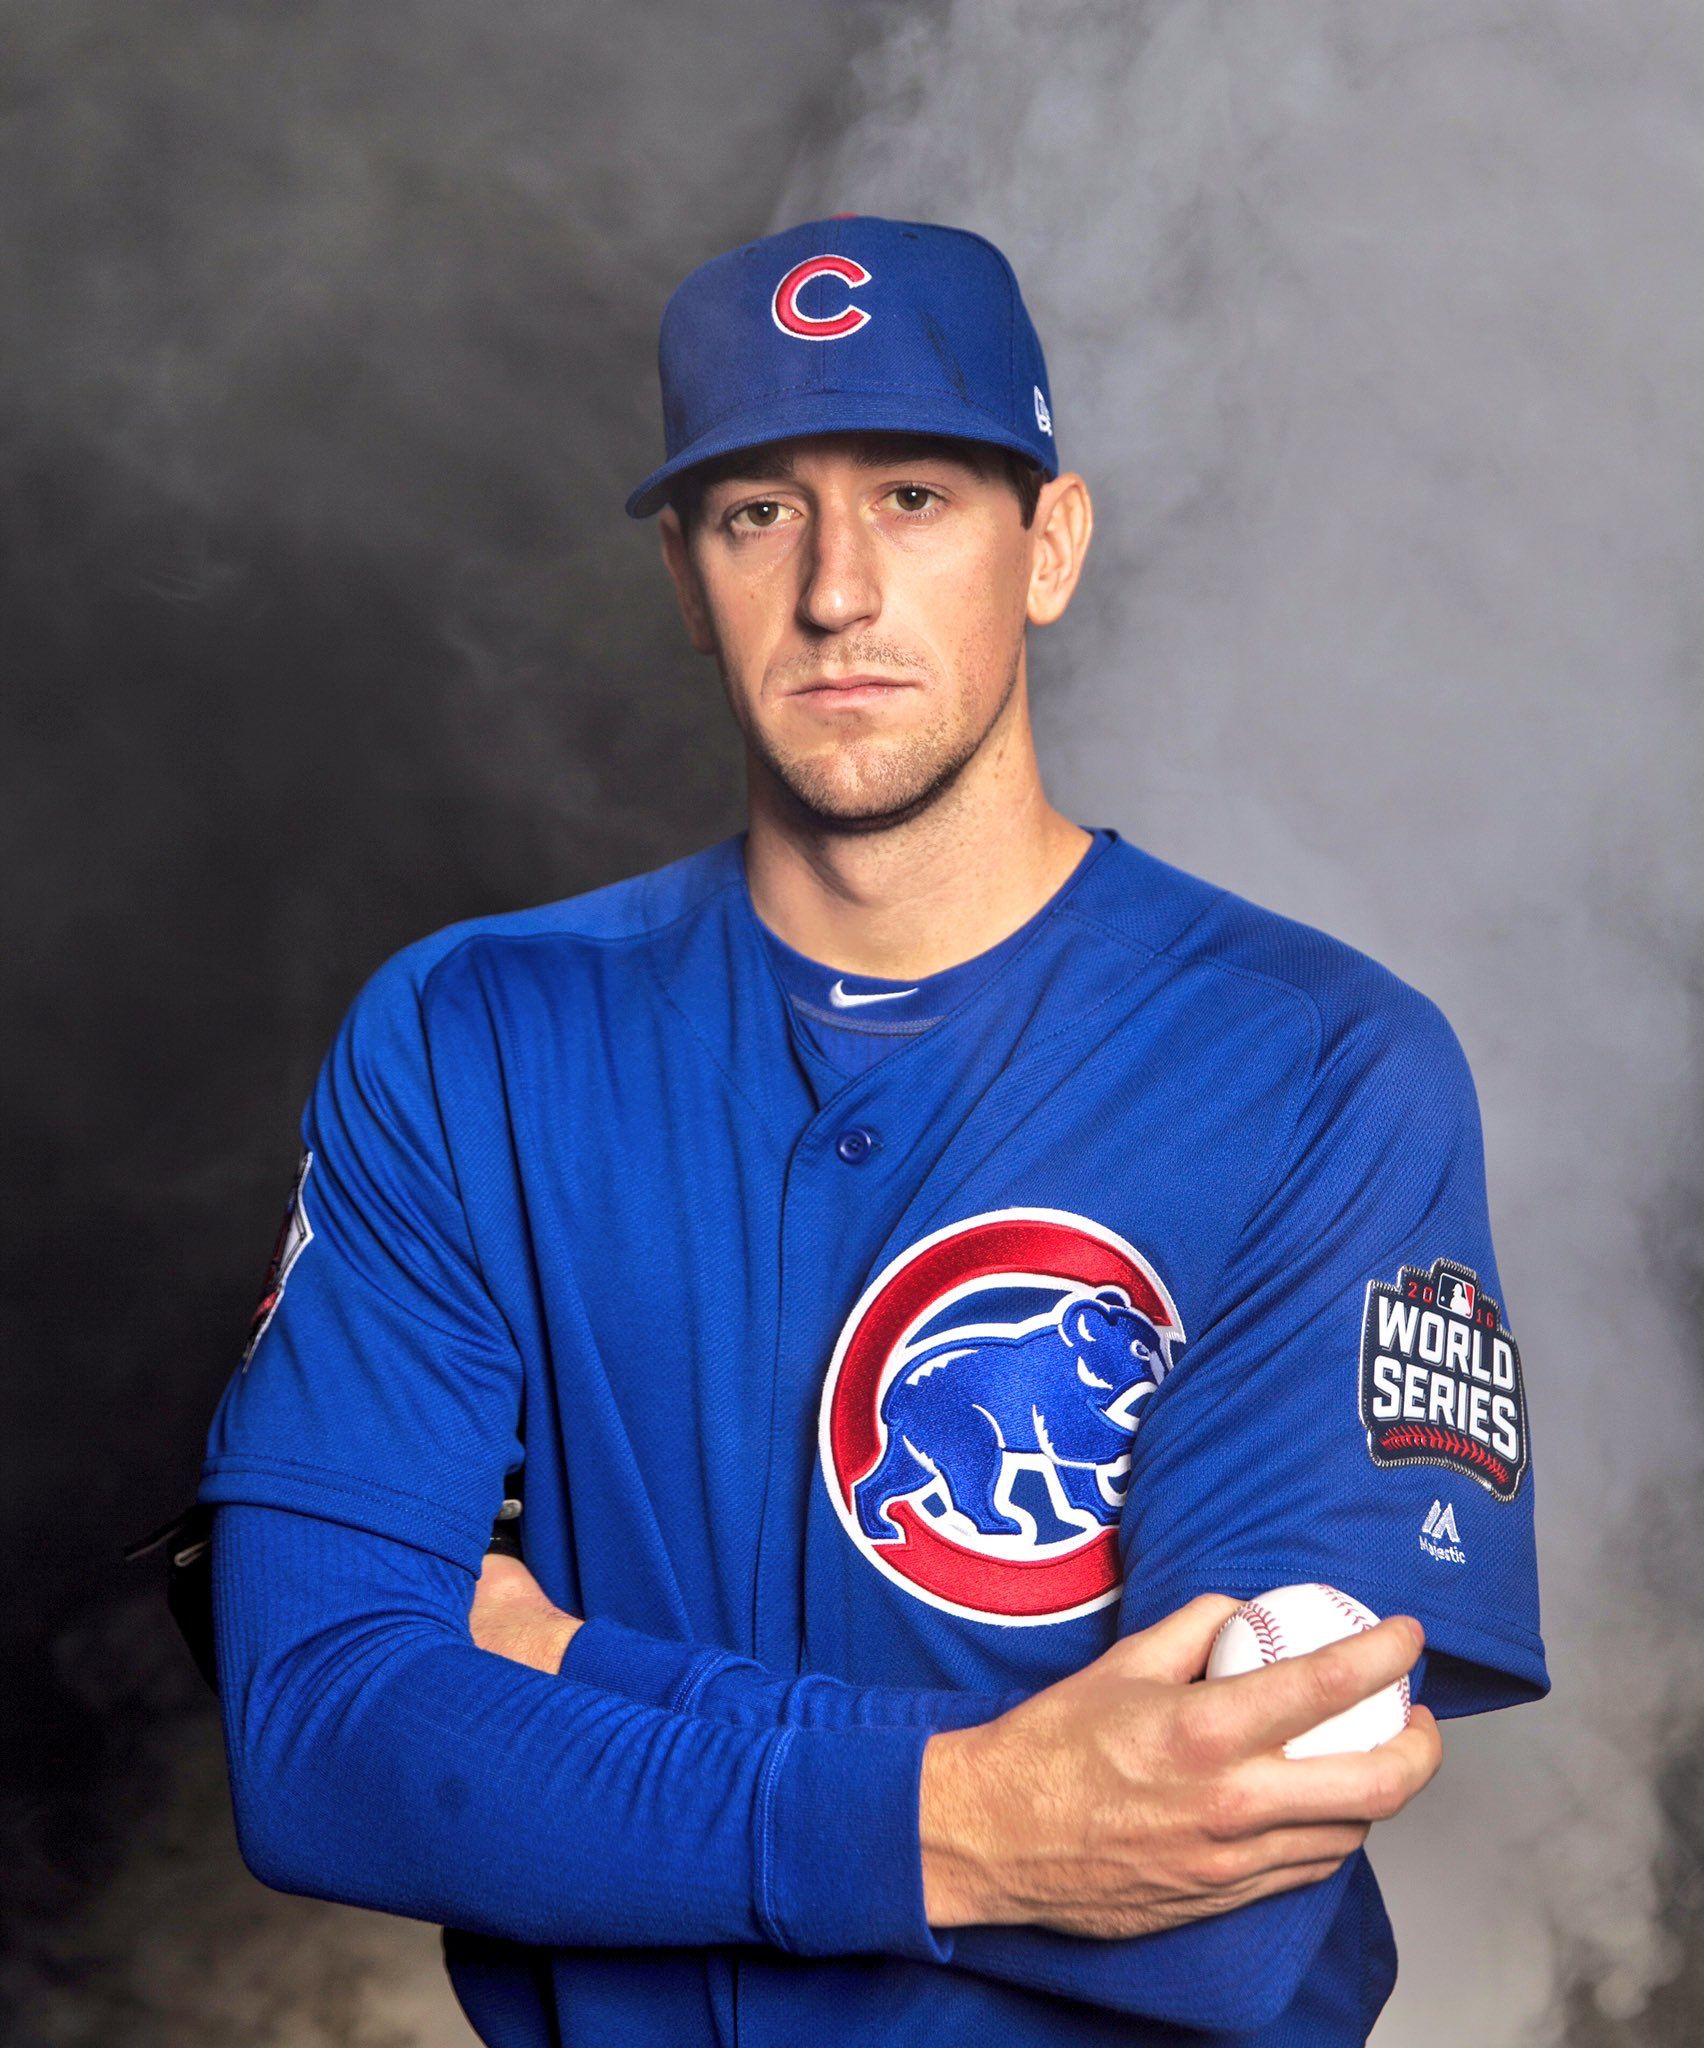 My Pick For Cy Young Award This Year Kyle Hendricks Ws Portraits Graduated From Dartmouth S Mlb Chicago Cubs Chicago Cubs World Series Chicago Cubs Baseball